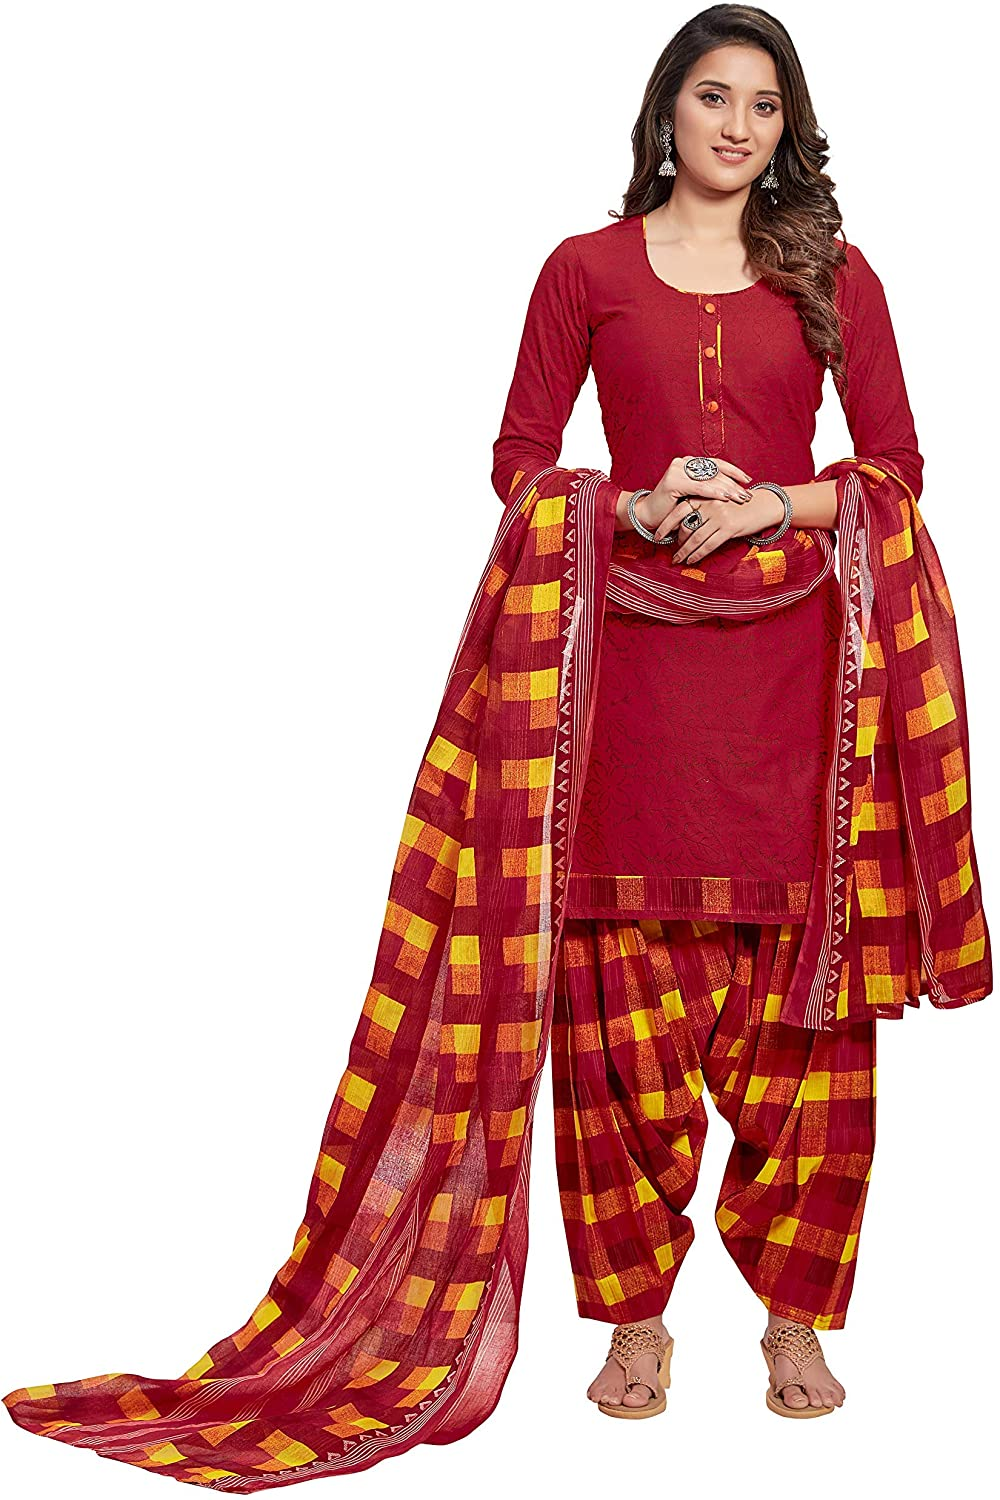 Indian Decor & Attire Women's Cotton Unstitched Dress Material (BAND6008, Maroon, Free Size)